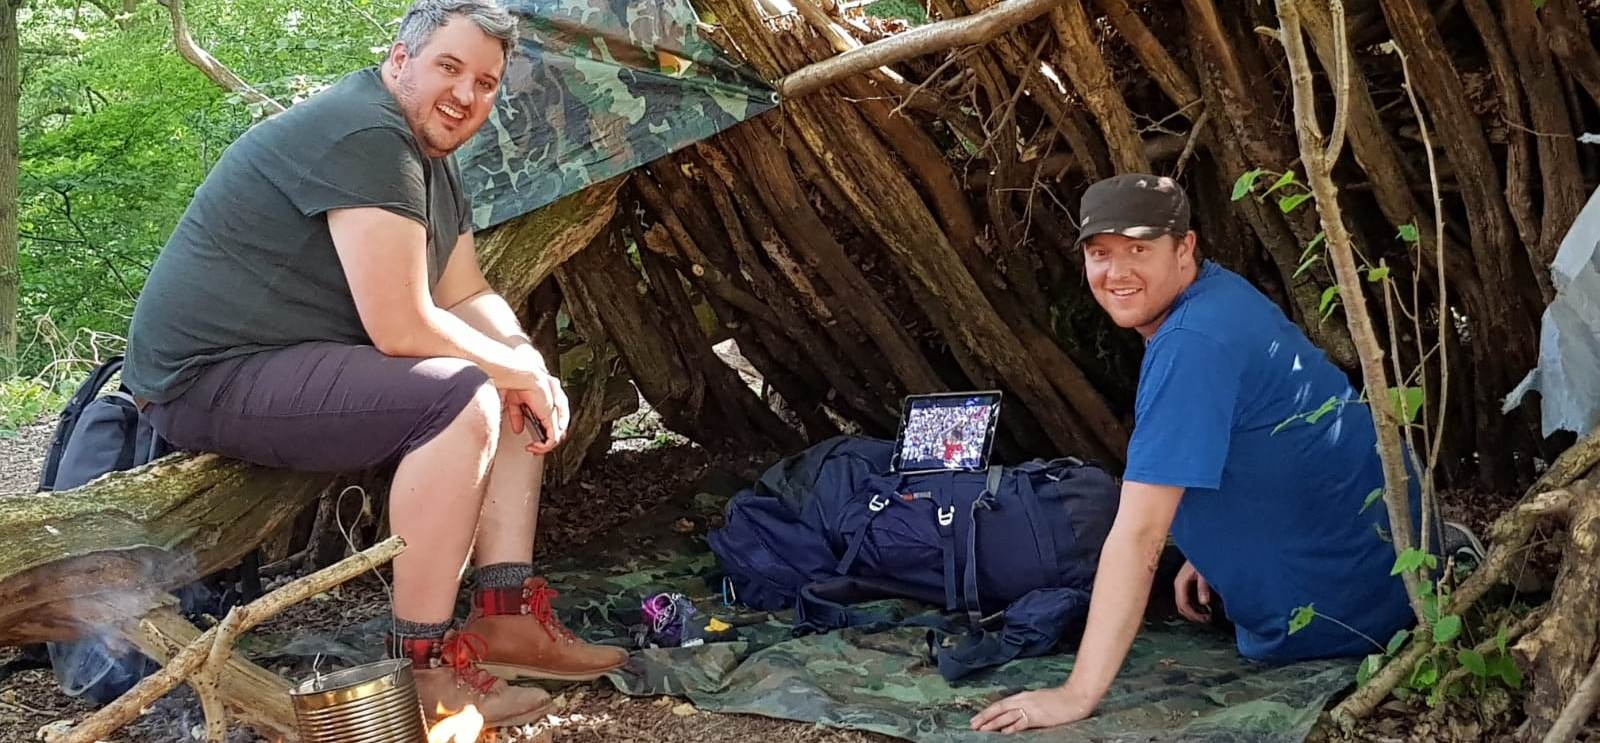 1 Day Bushcraft And Survival Course In Surrey